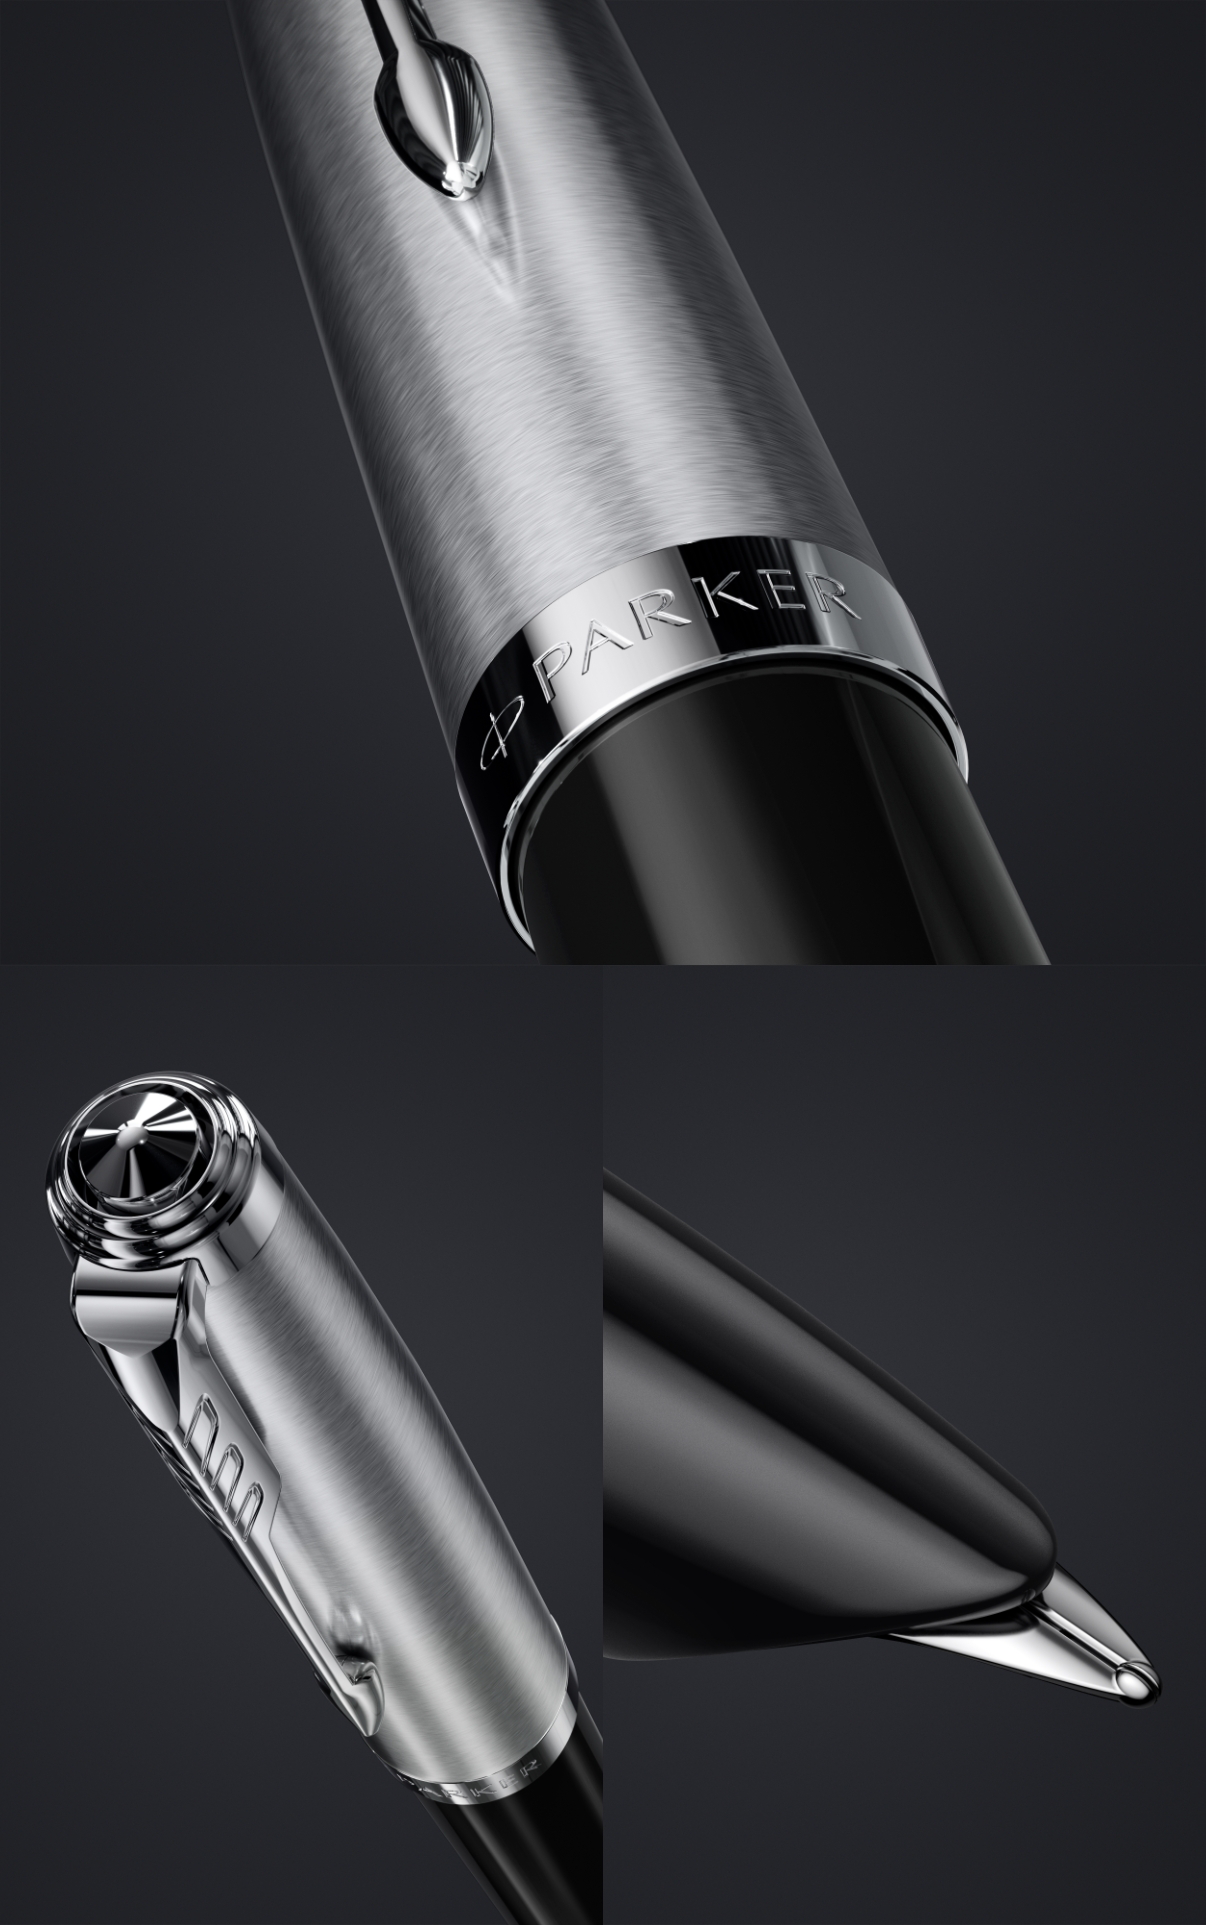 Black: The iconic hooded nib, stainless-steel, the barrel cap of Parker 51